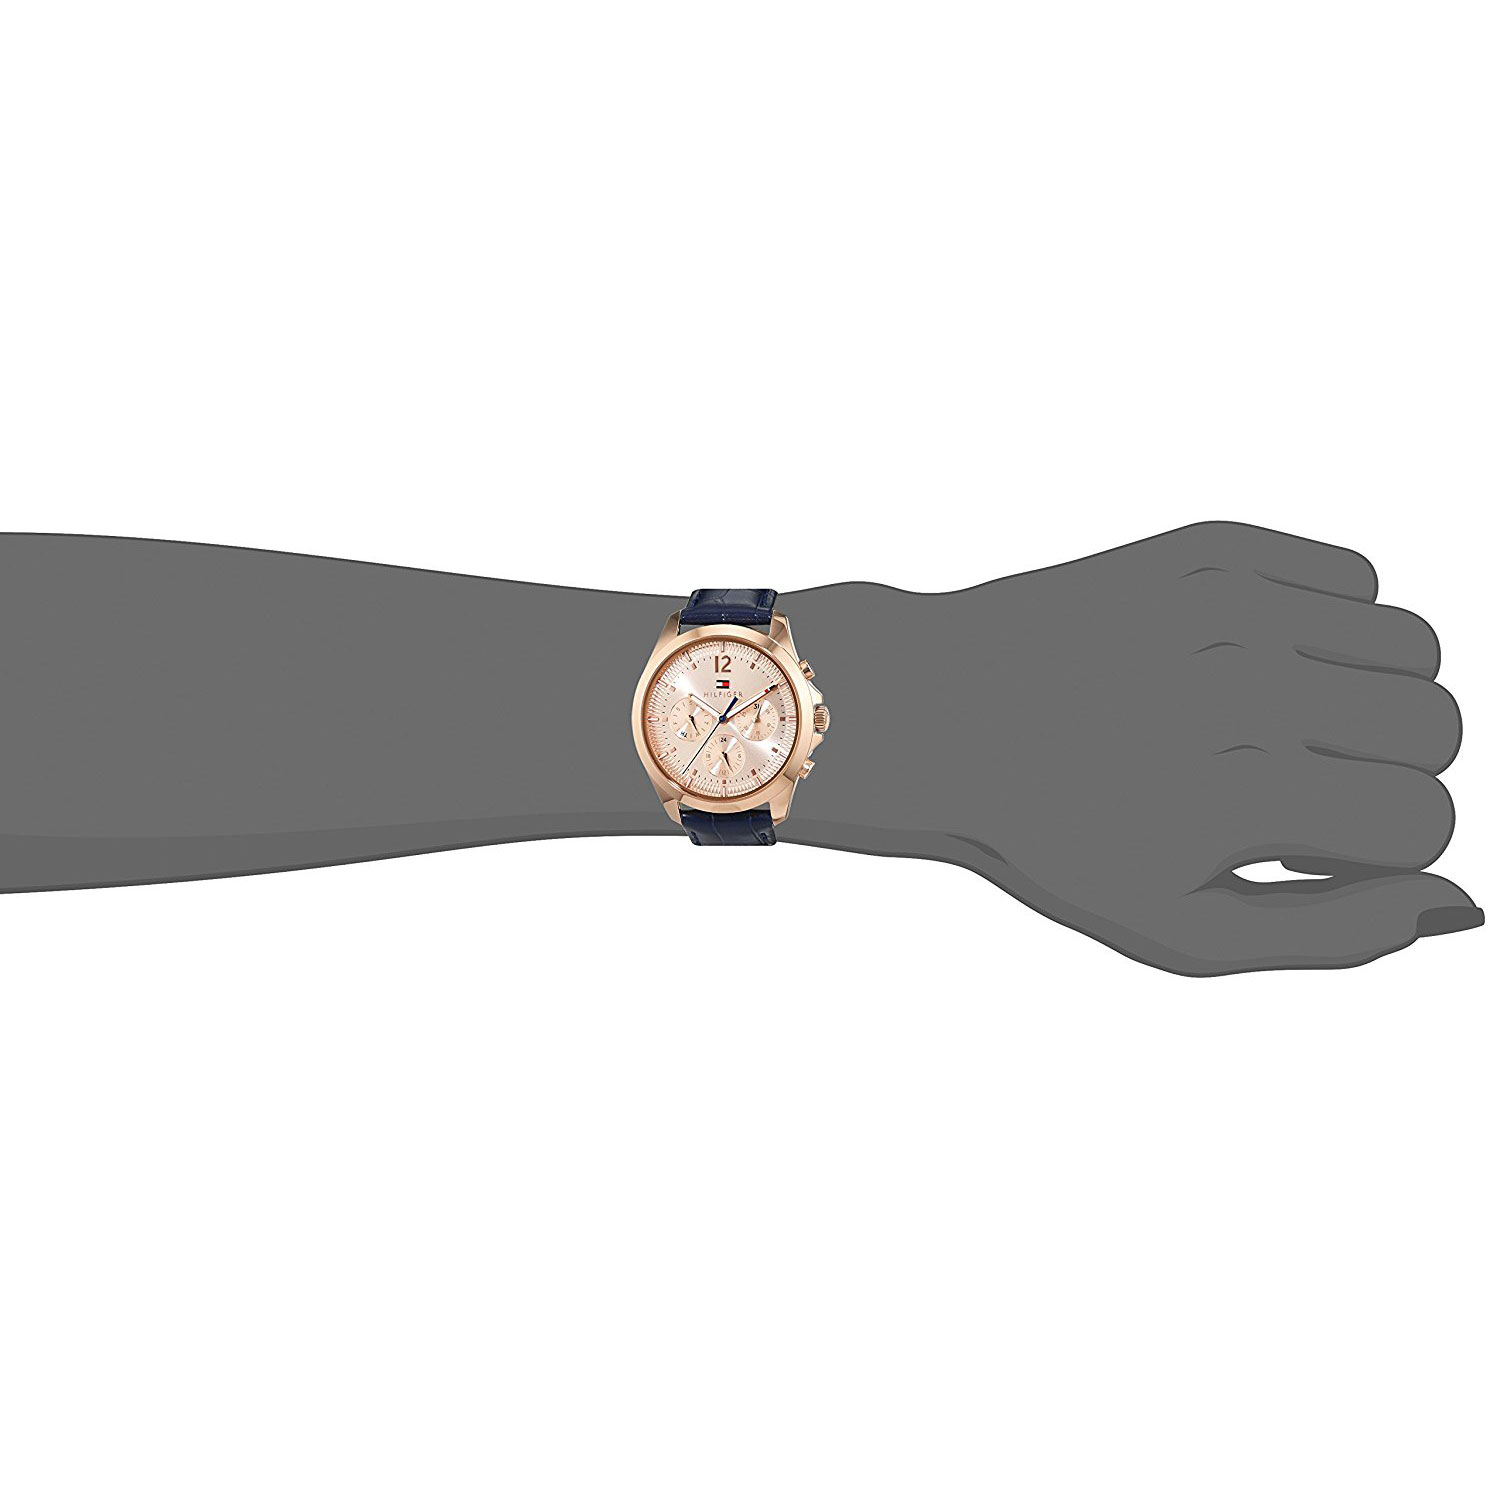 bc0f4d49e4 Tommy Hilfiger Watch with rose gold stainless steel and dark blue leather  strap 1781703 at Hand